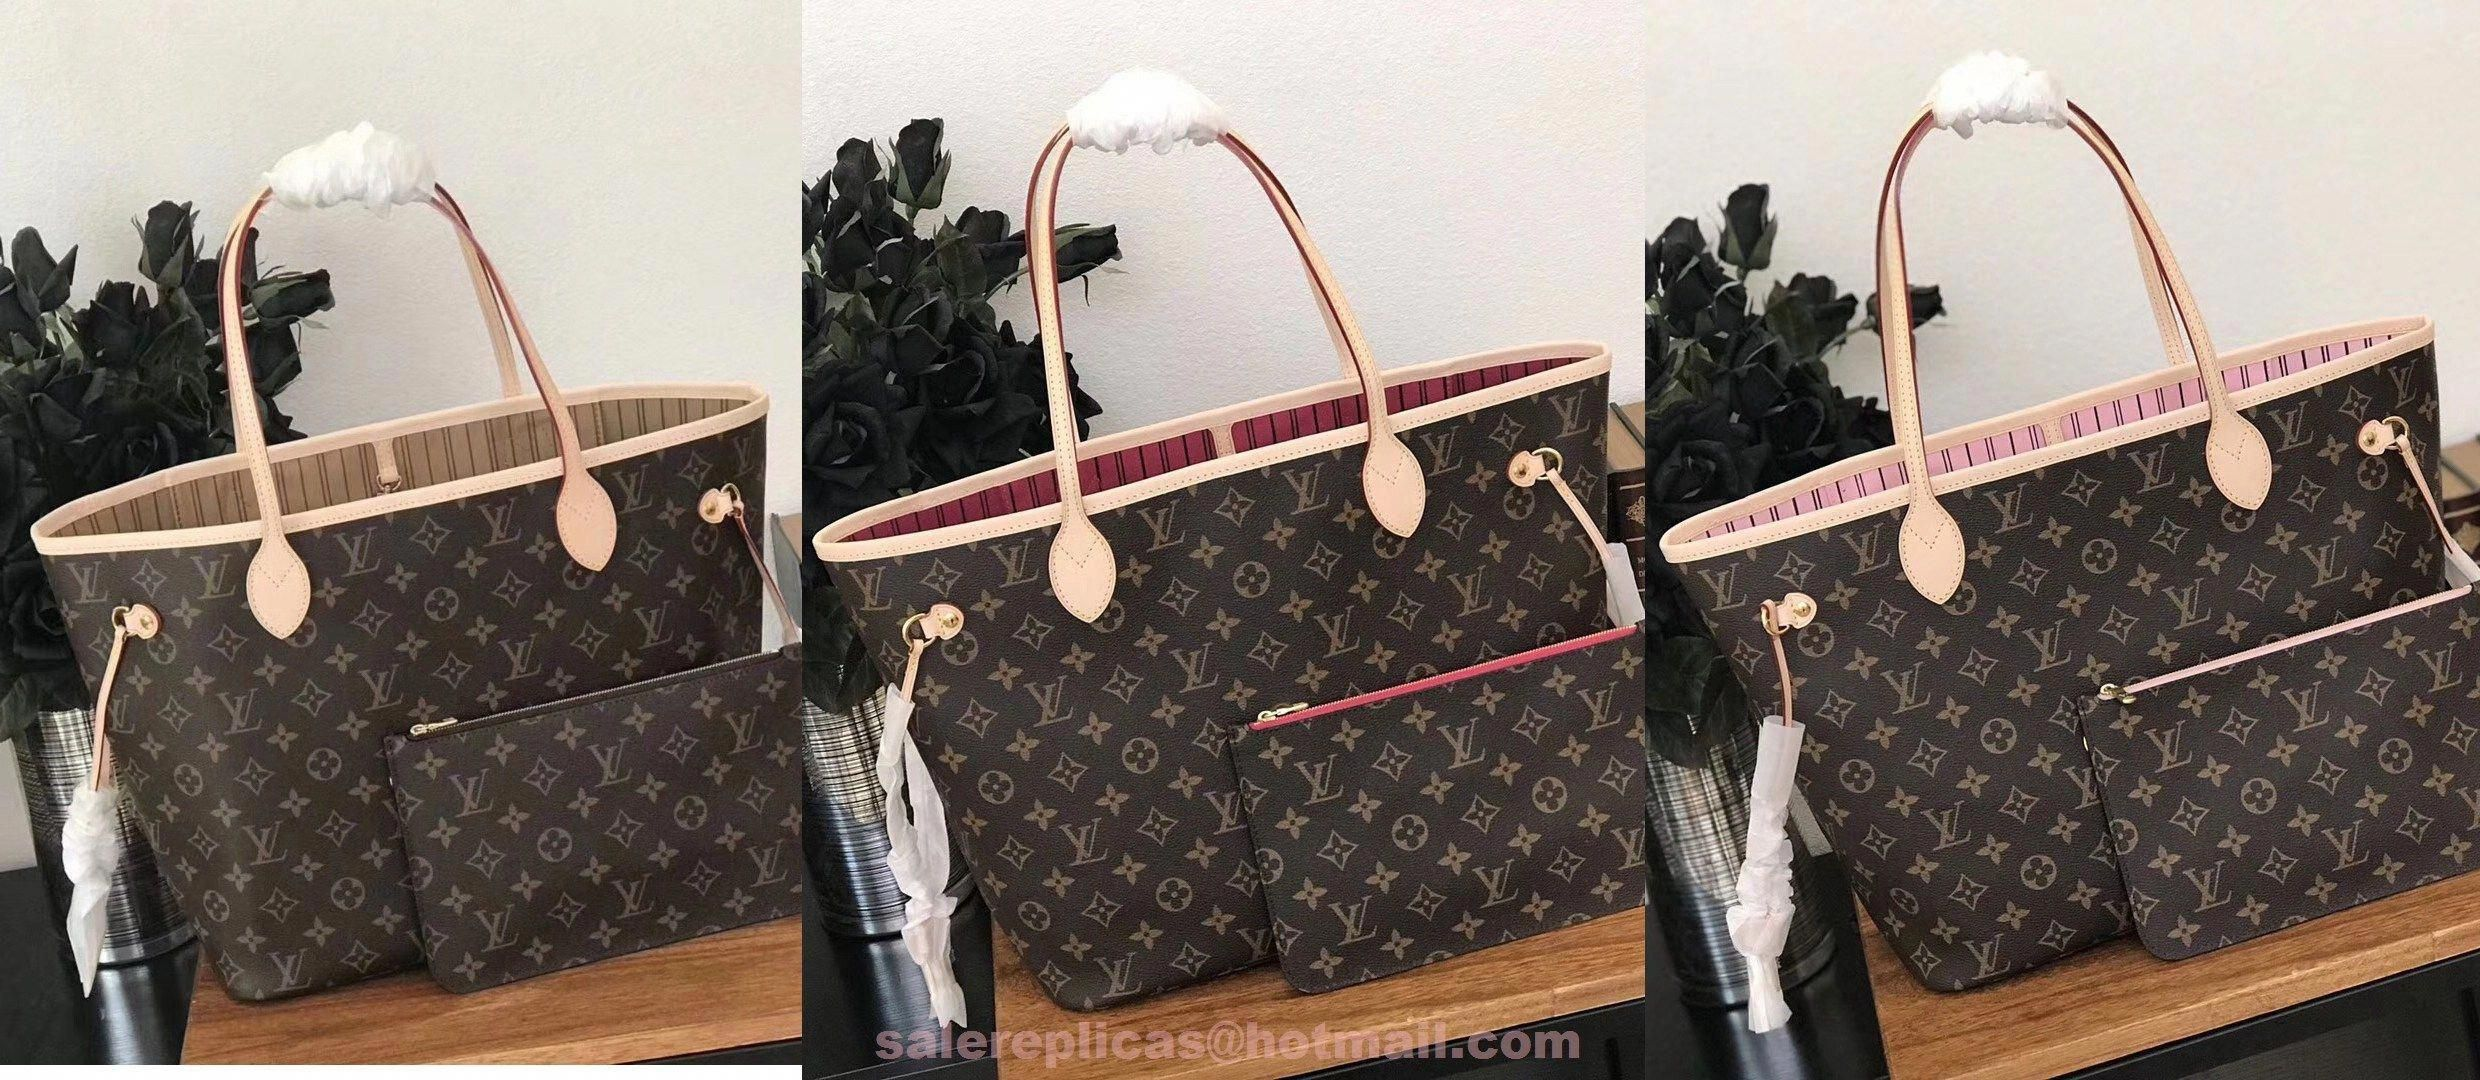 replica Louis Vuitton Neverfull MM Monogram Canvas Handbag   Louisvuittonhandbags 3351c98e5a412